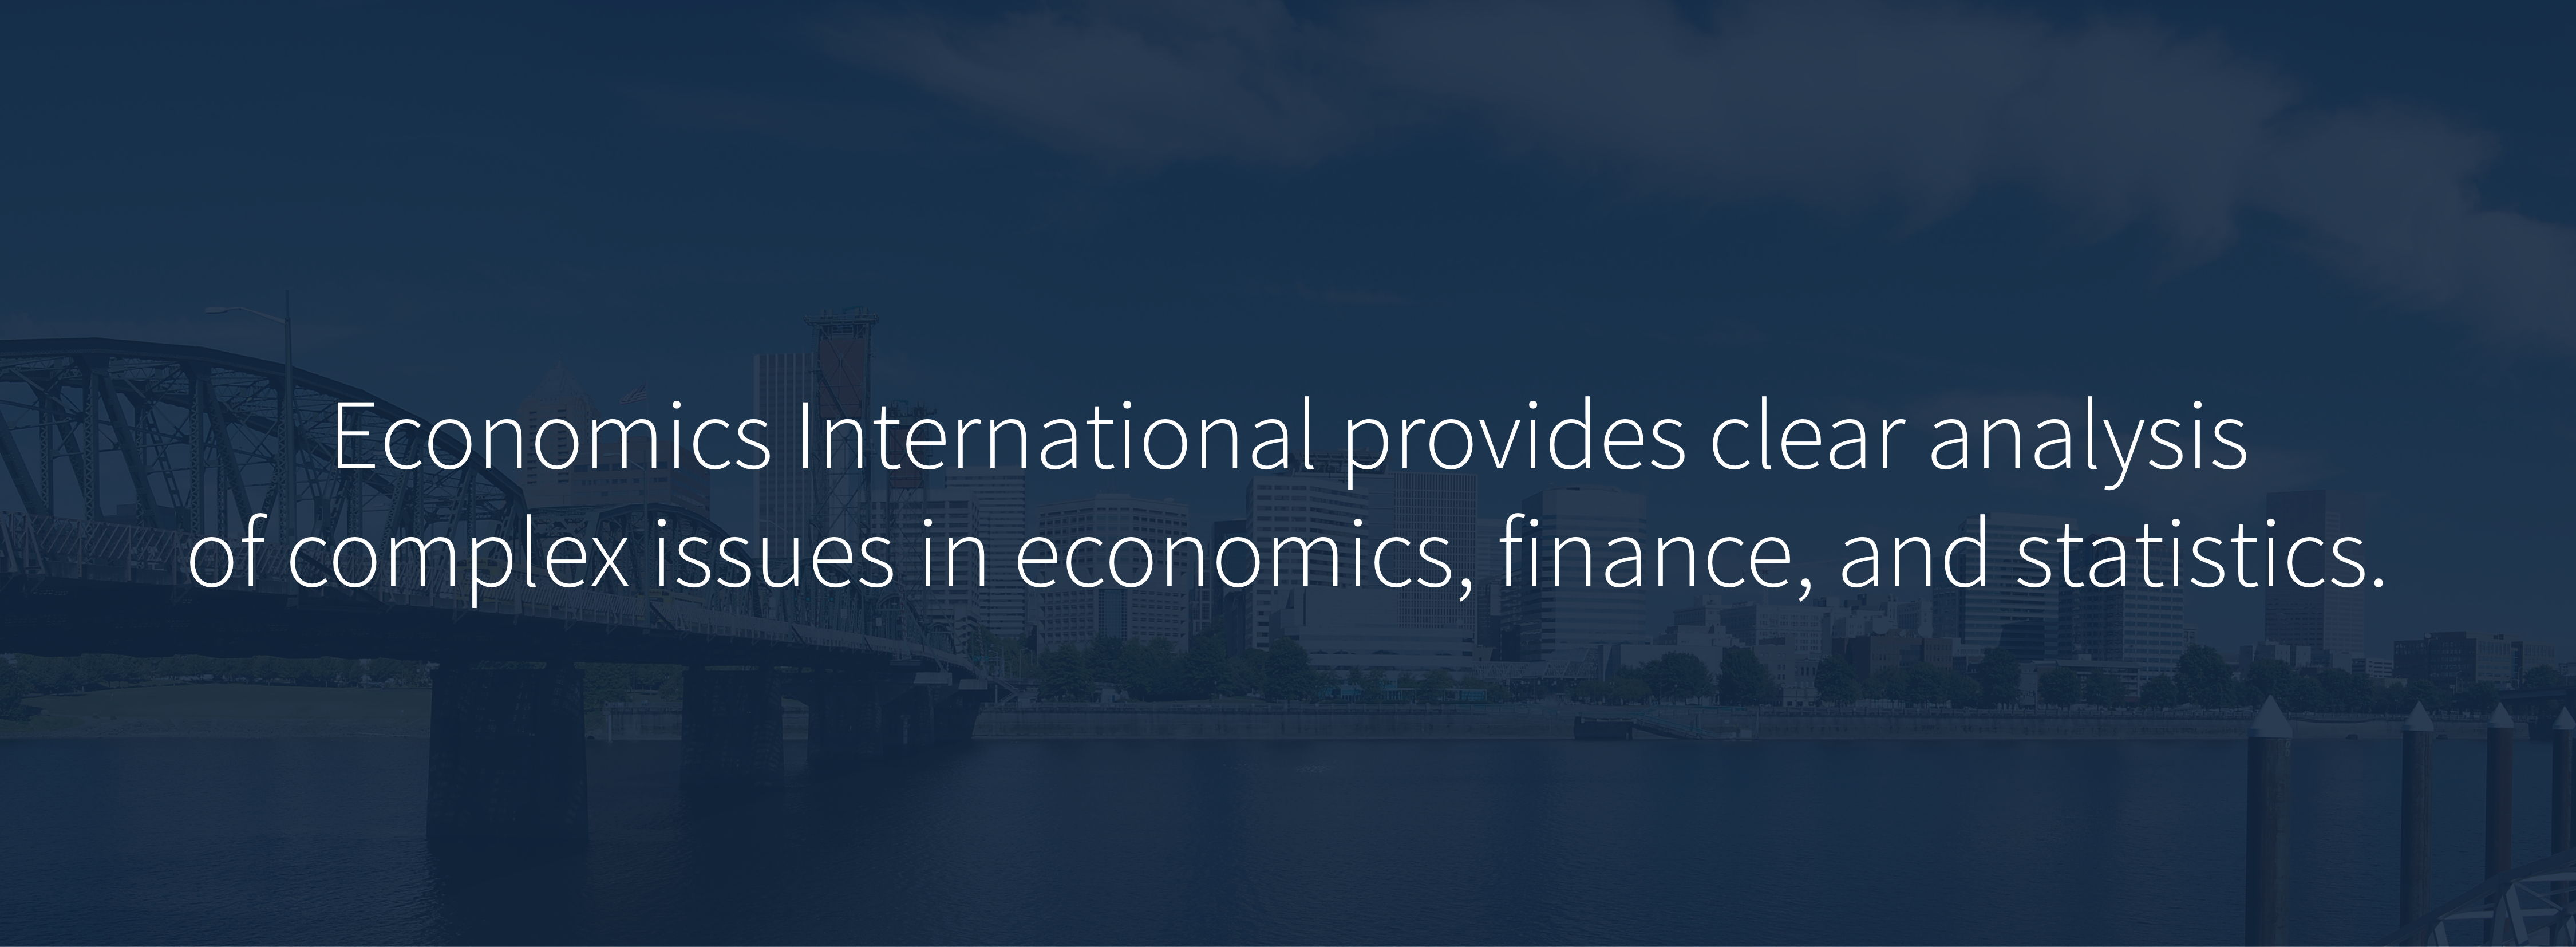 Economics-International-Web-Header1